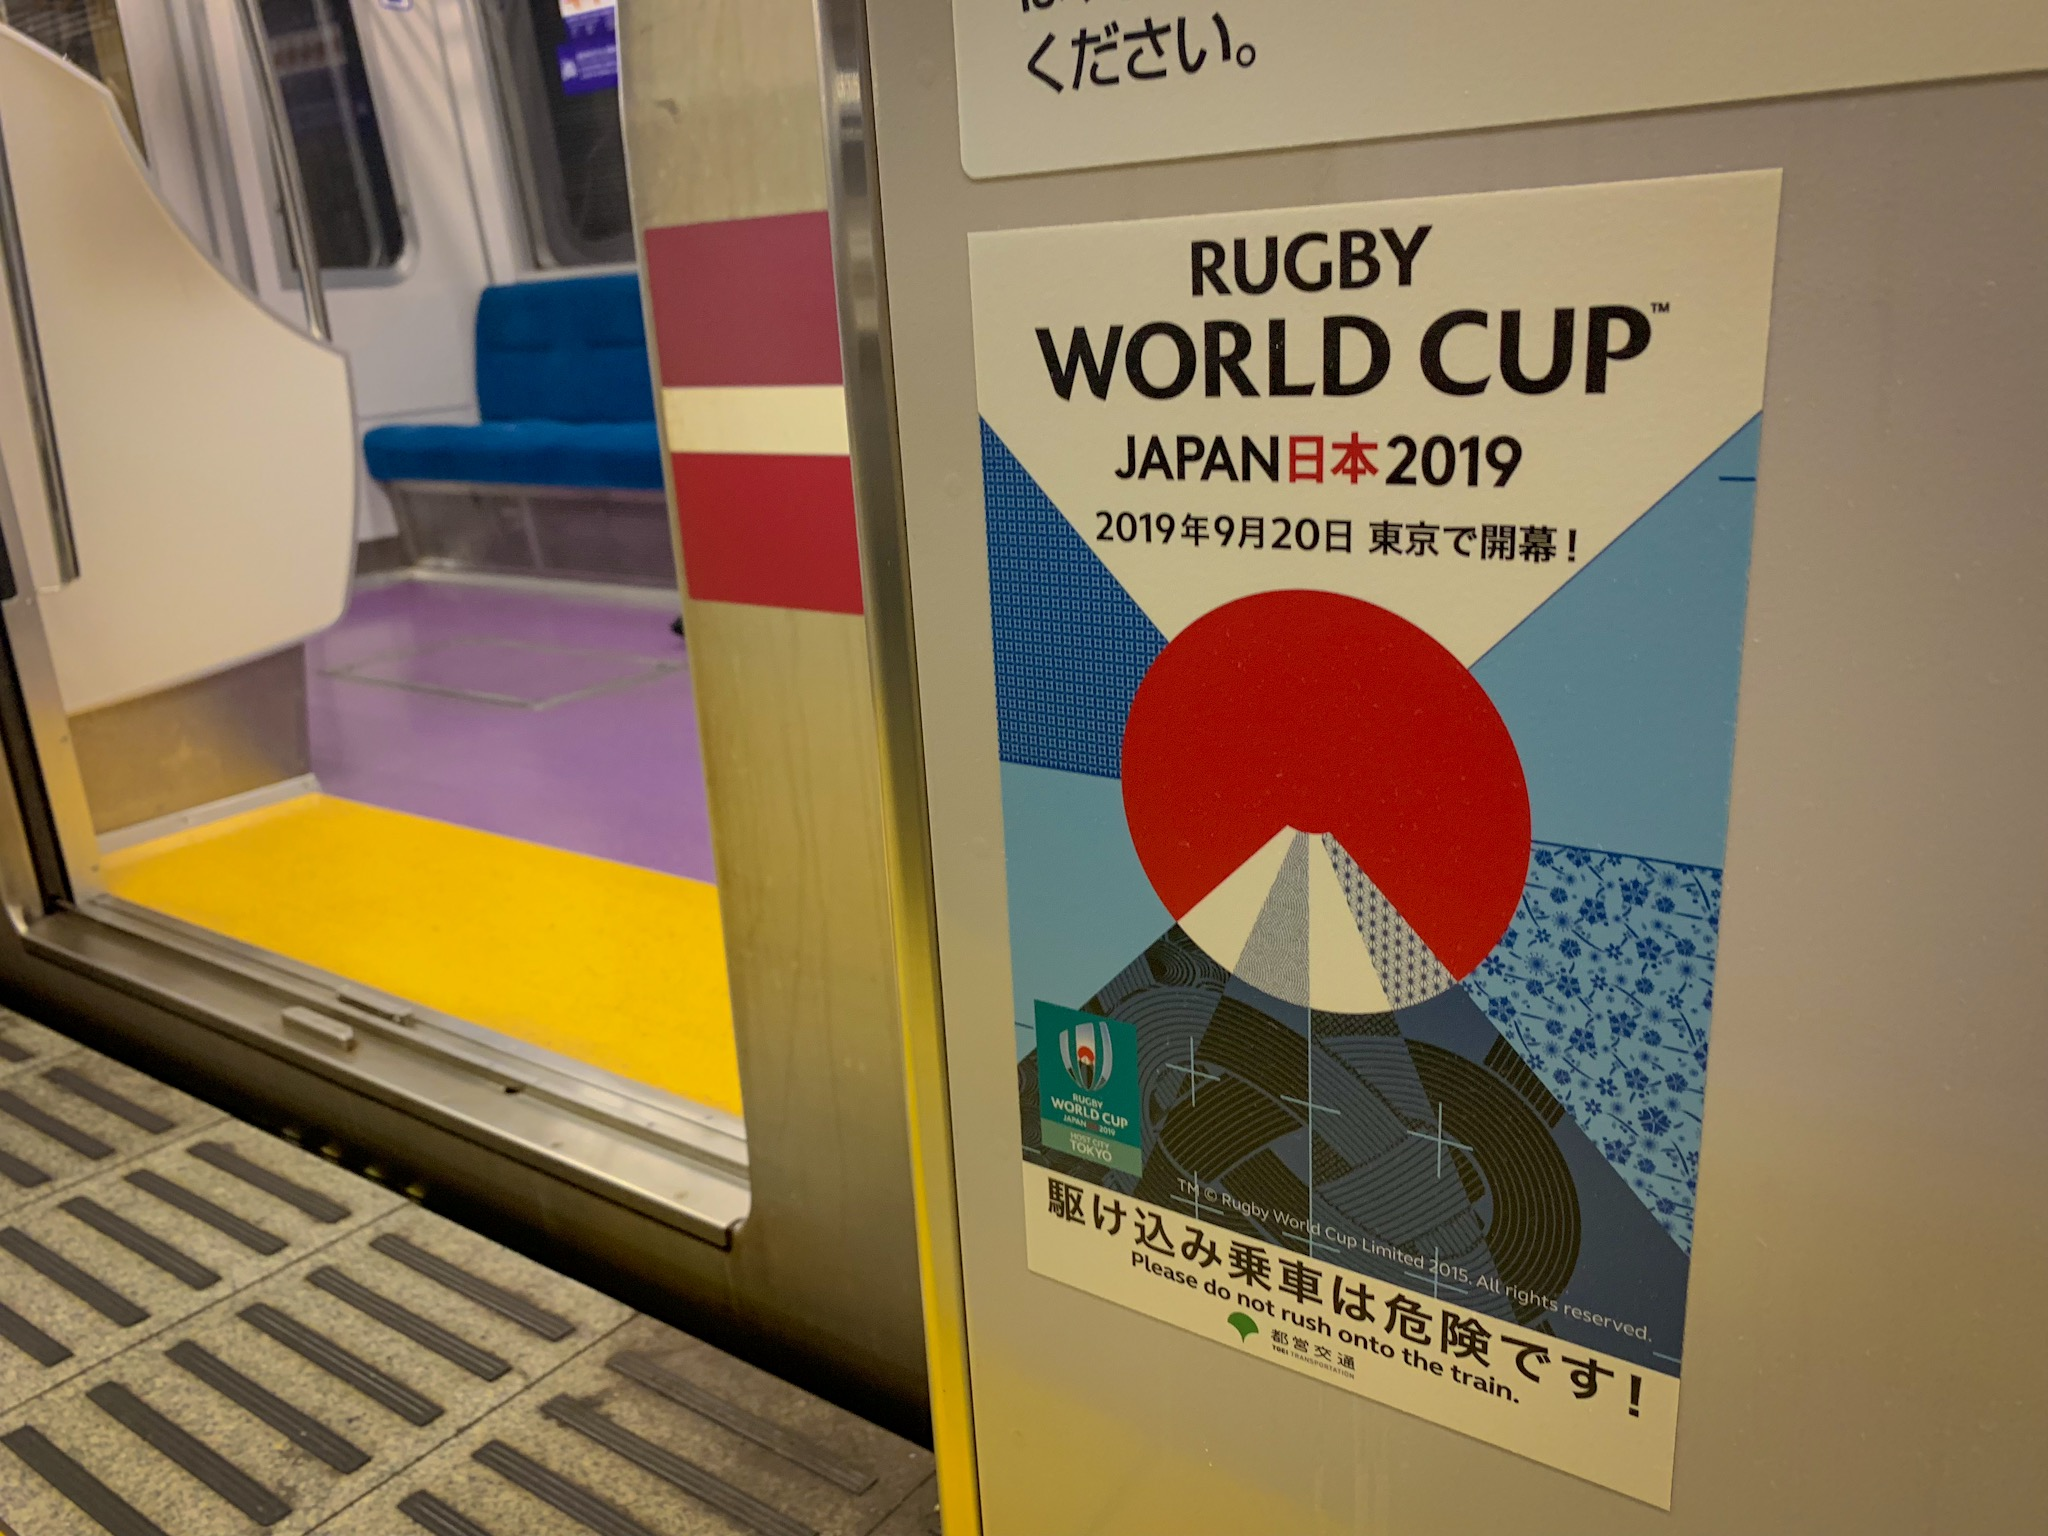 The 2019 Rugby World Cup kicks off in Japan on Friday 20 September.